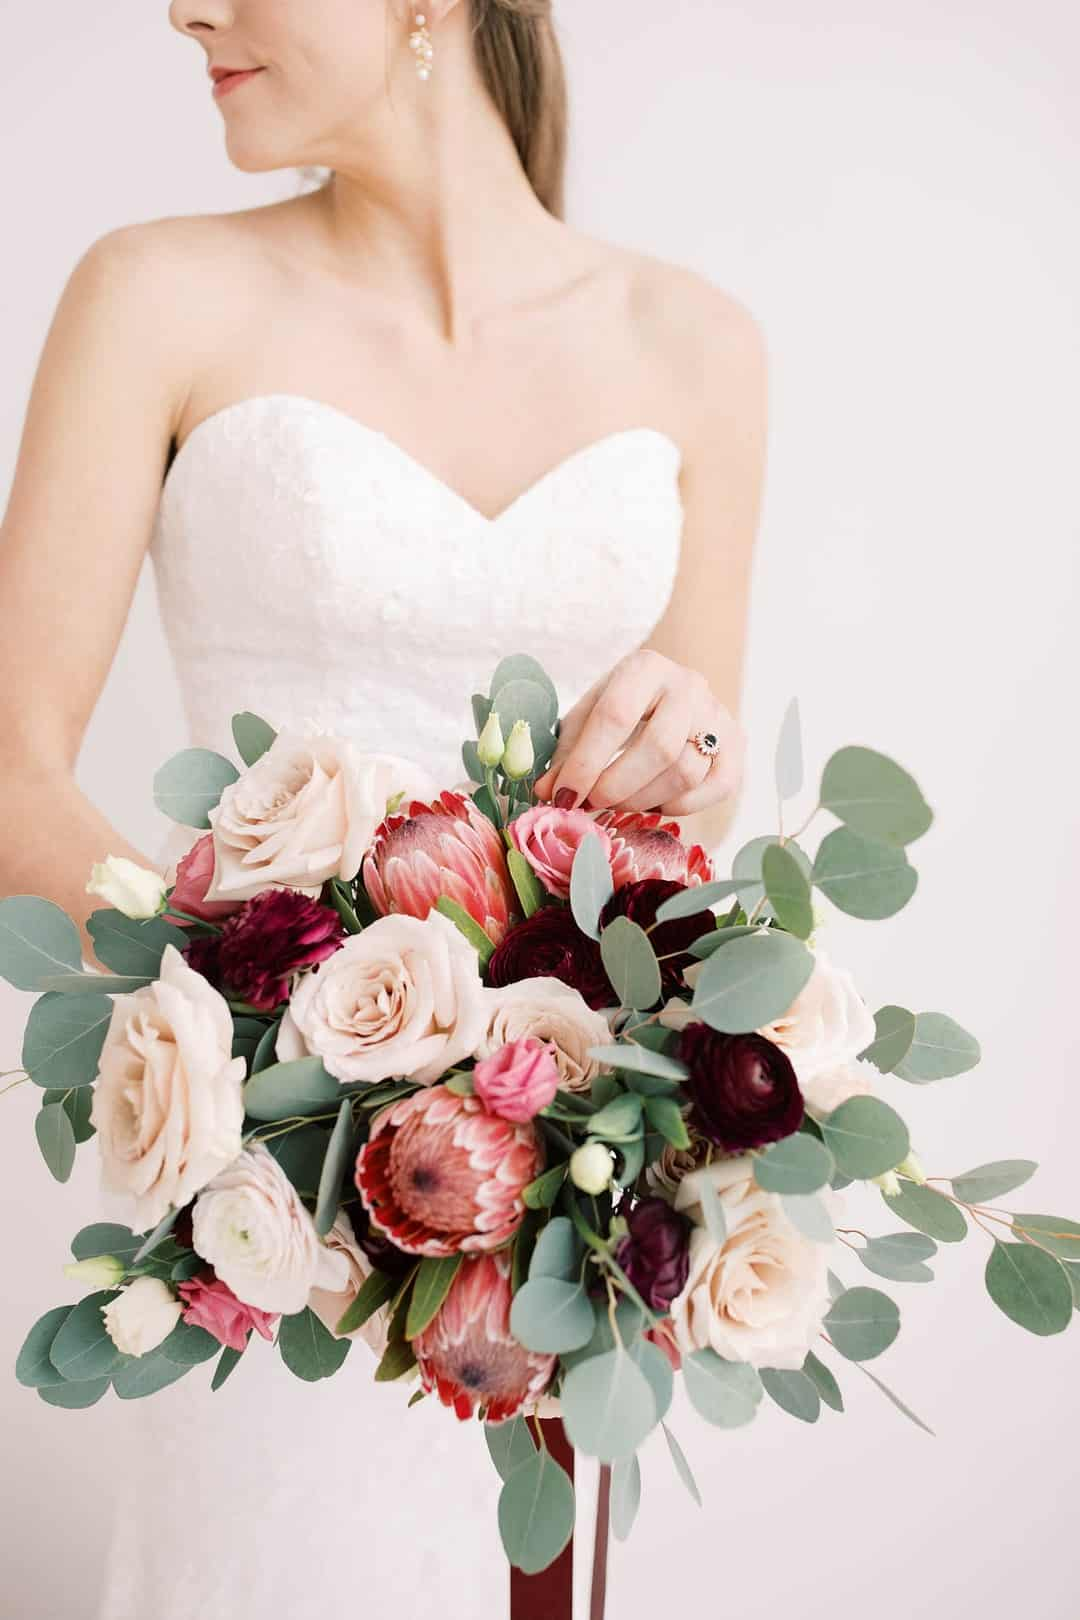 Valentines Day wedding inspiration, featuring giant heart balloon backdrop and romantic feather wedding dress